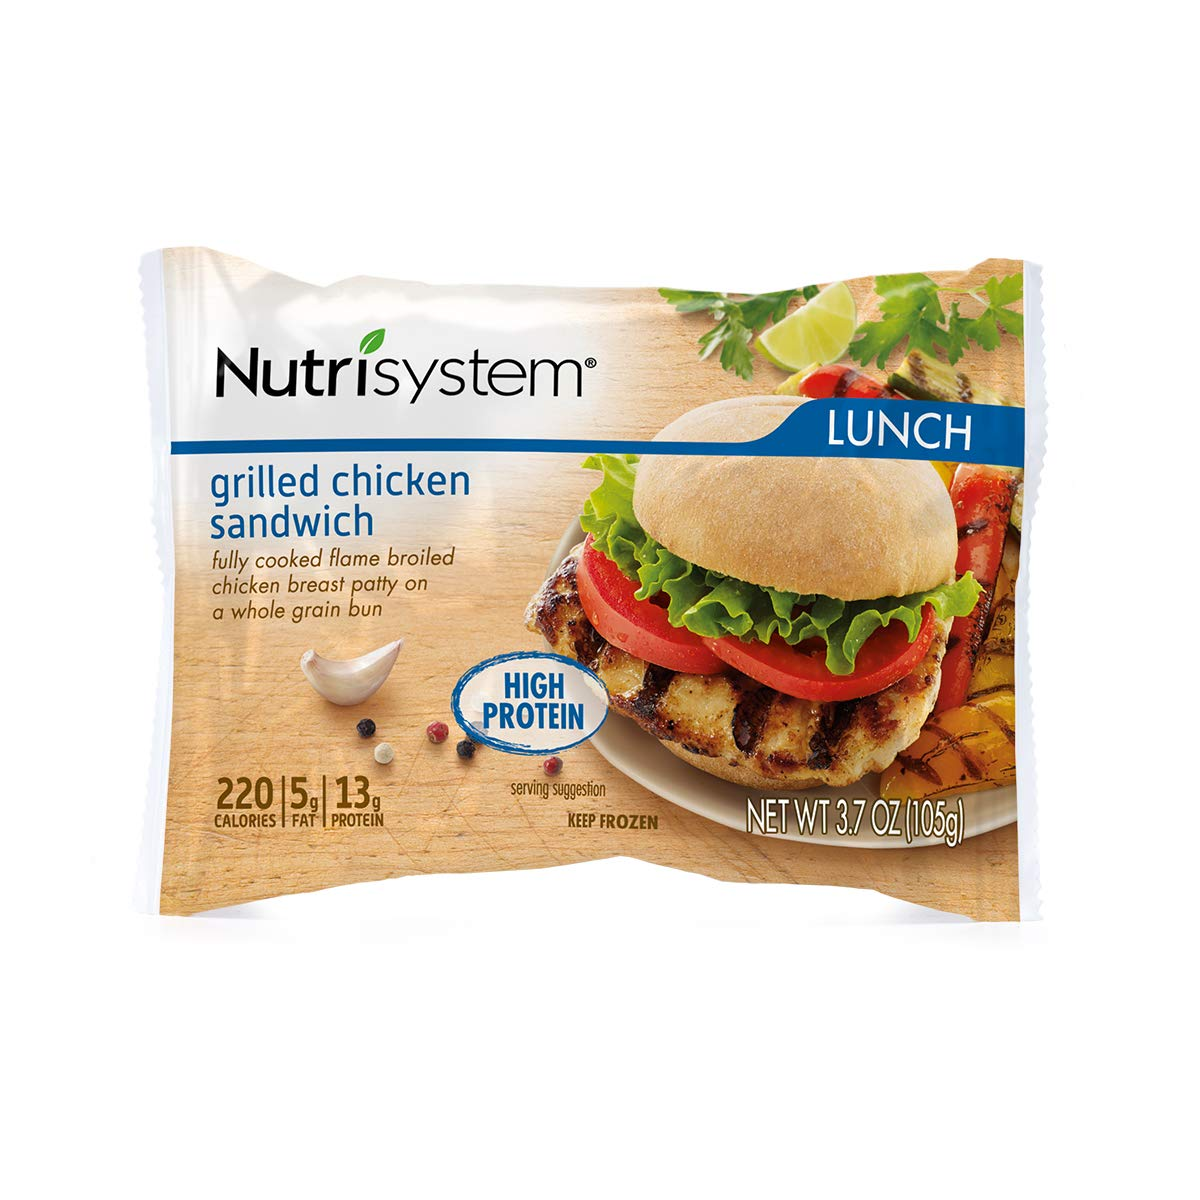 Nutrisystem® Grilled Chicken Sandwich, 12ct. Frozen Sandwiches on Whole-Wheat Rolls to Support Healthy Weight Loss